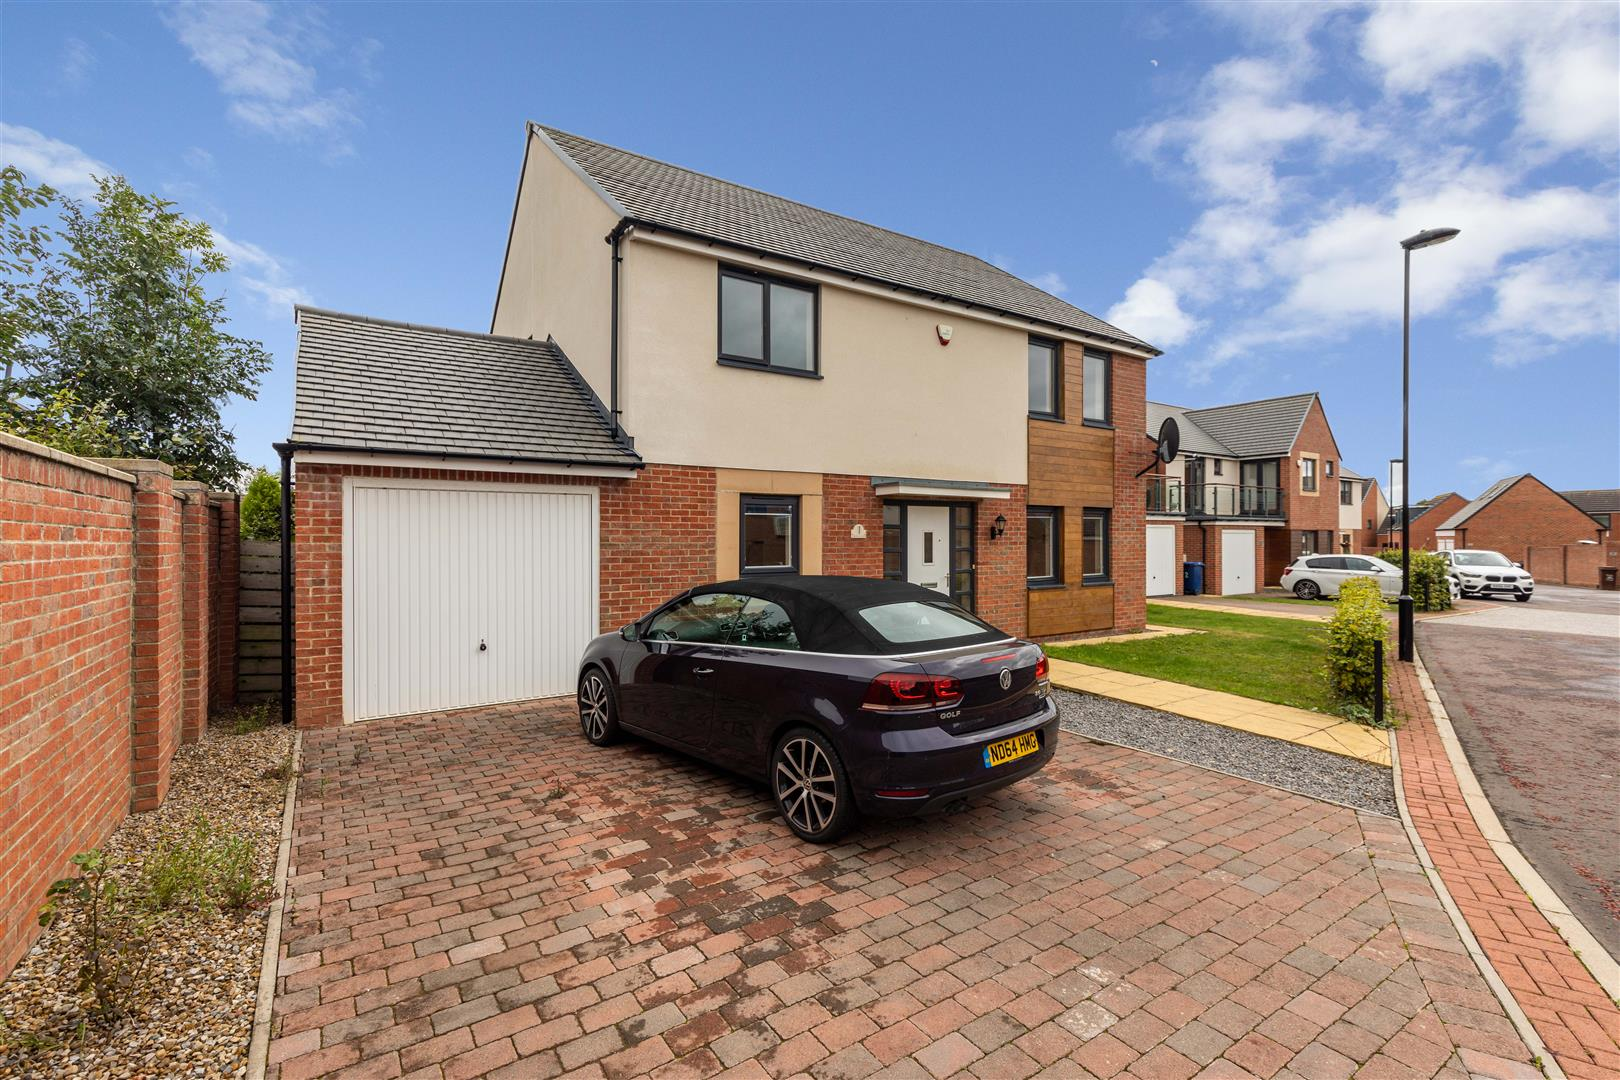 4 bed detached house for sale in Great Park, NE13 9AU  - Property Image 1